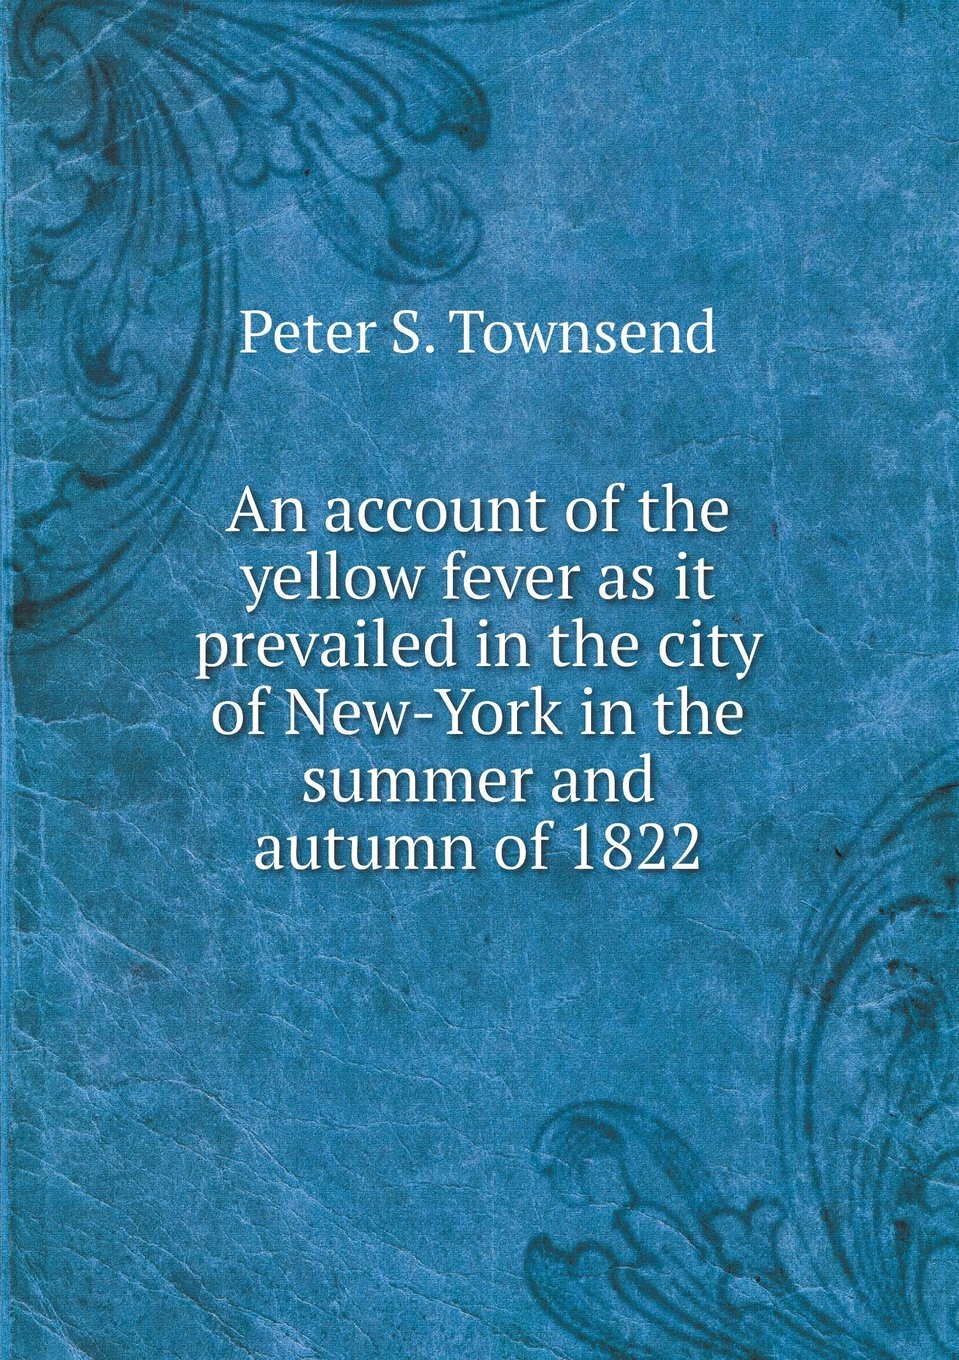 Download An account of the yellow fever as it prevailed in the city of New-York in the summer and autumn of 1822 ebook